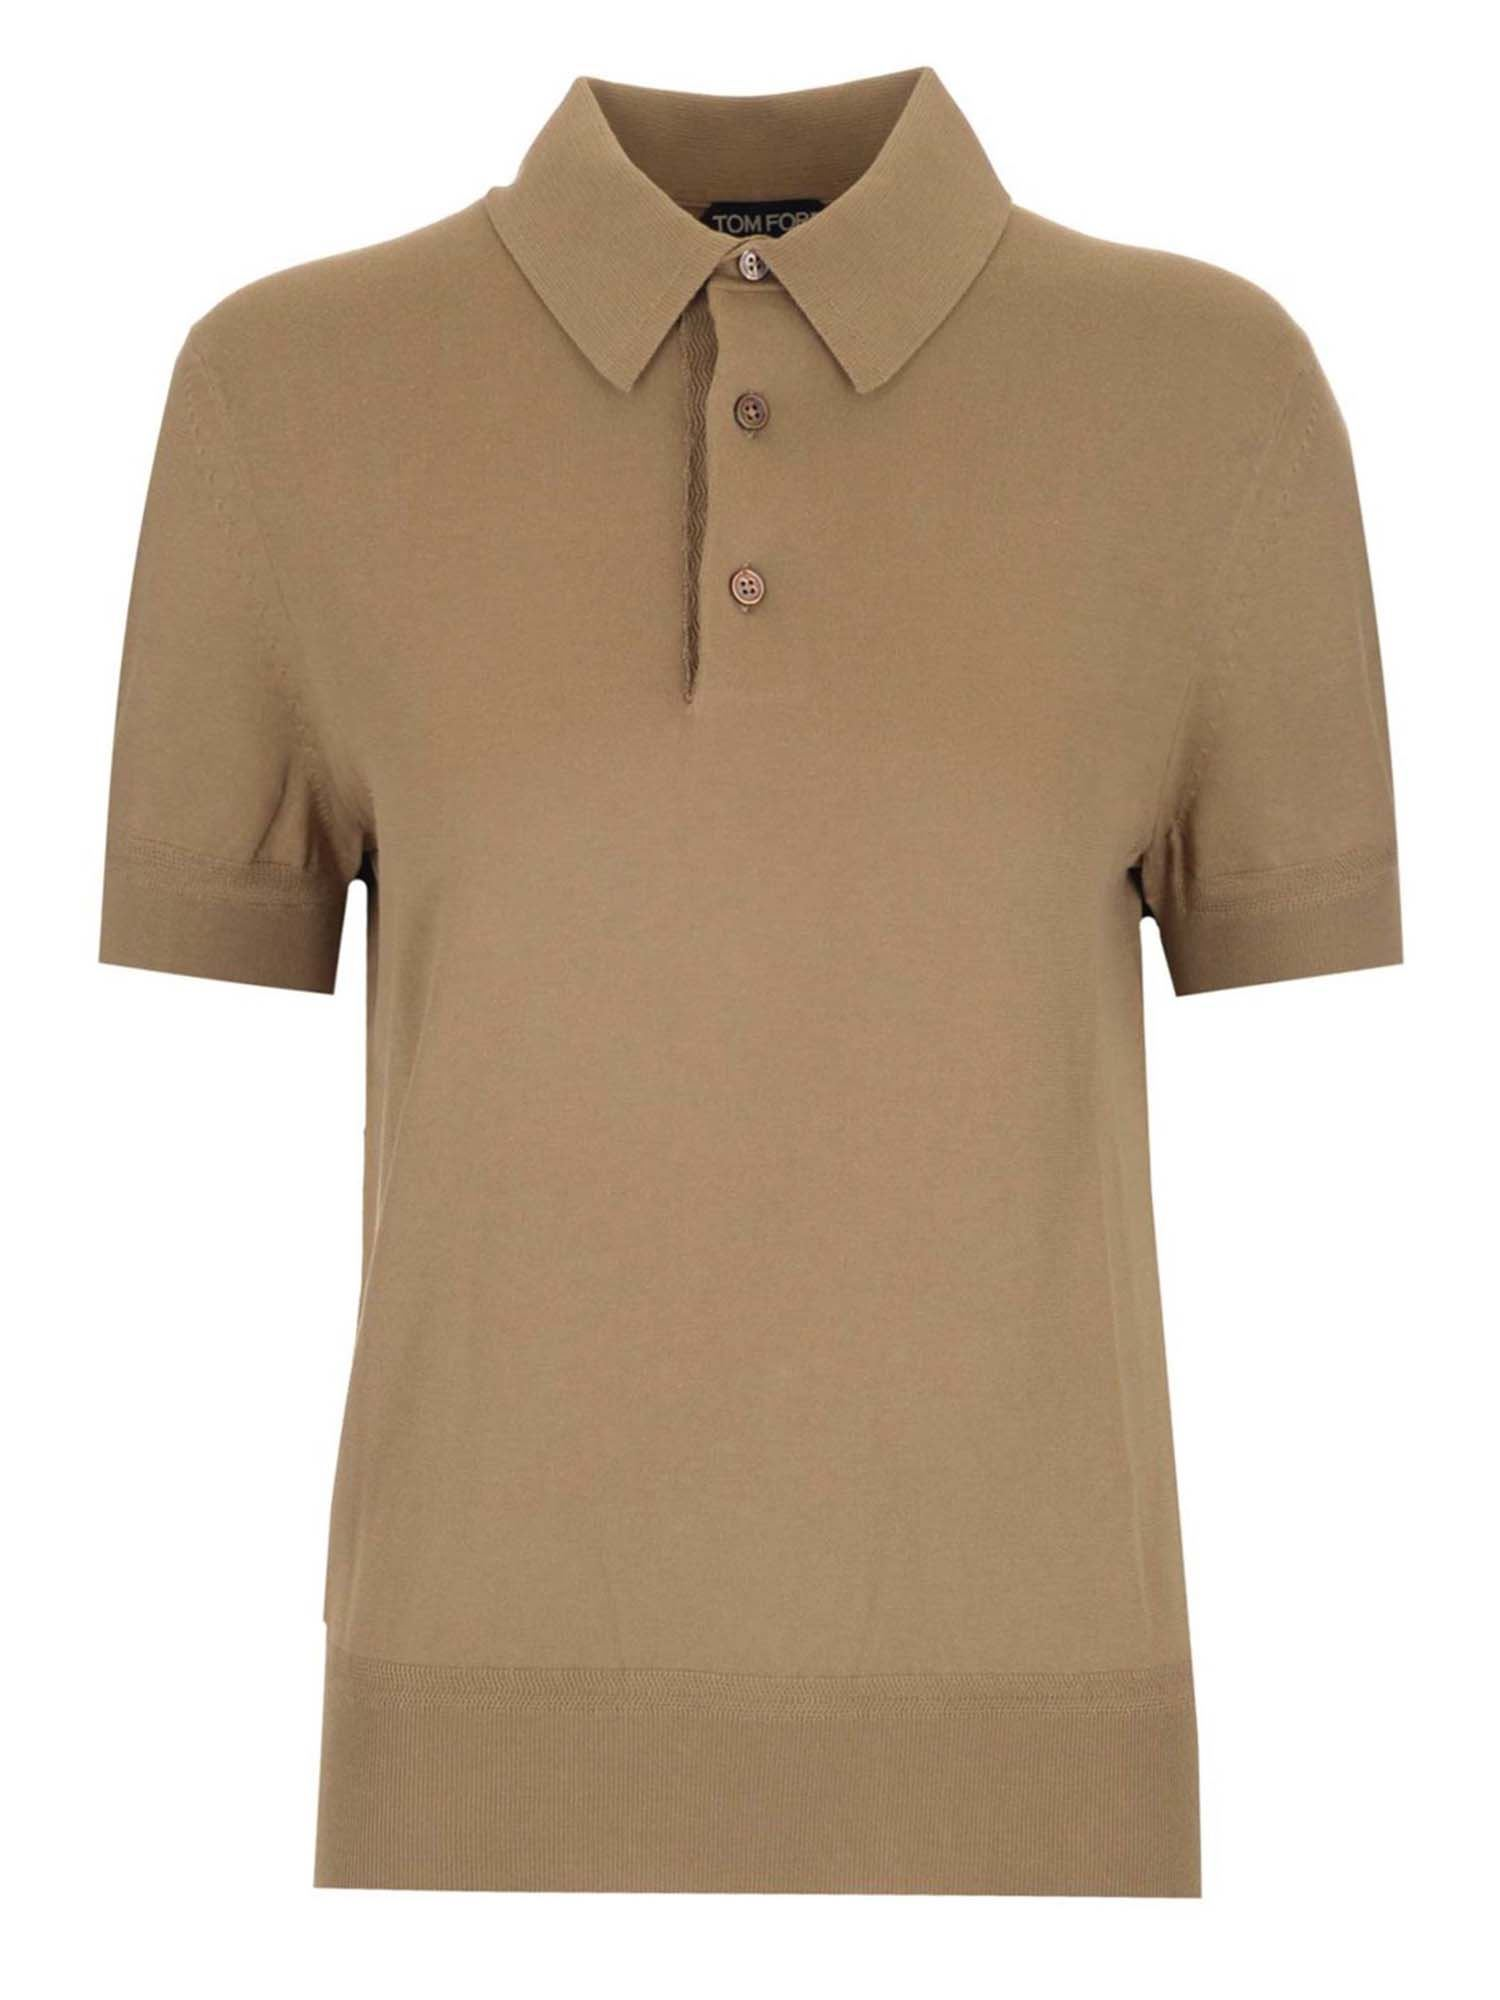 Tom Ford Cottons JERSEY POLO SHIRT IN BEIGE